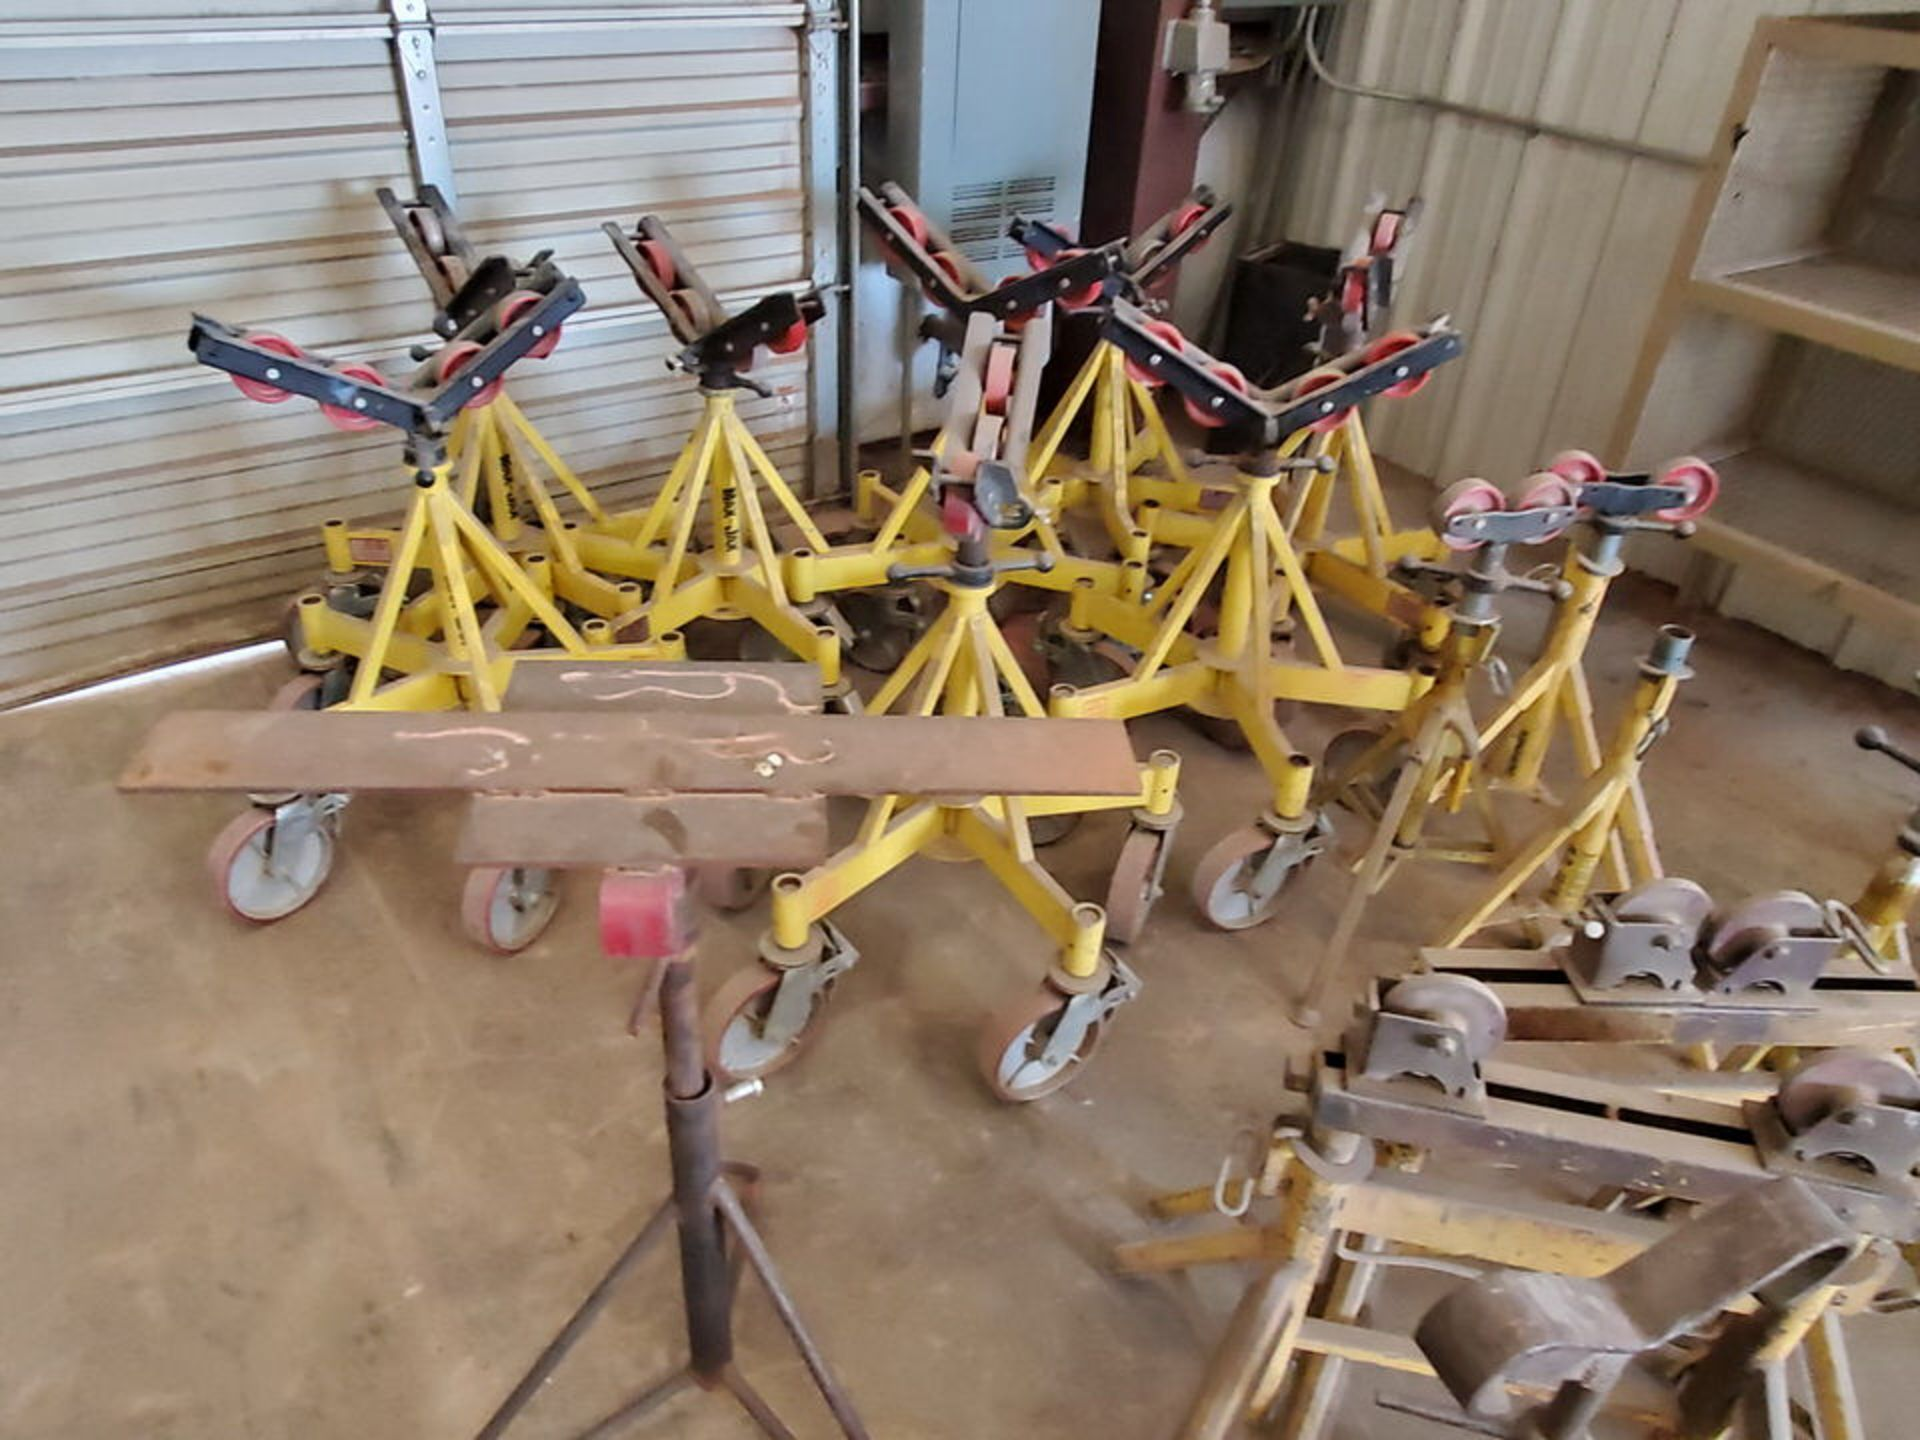 Max & Other (21) Pipe Stands & Rollers 1K-5K Cap. - Image 3 of 6